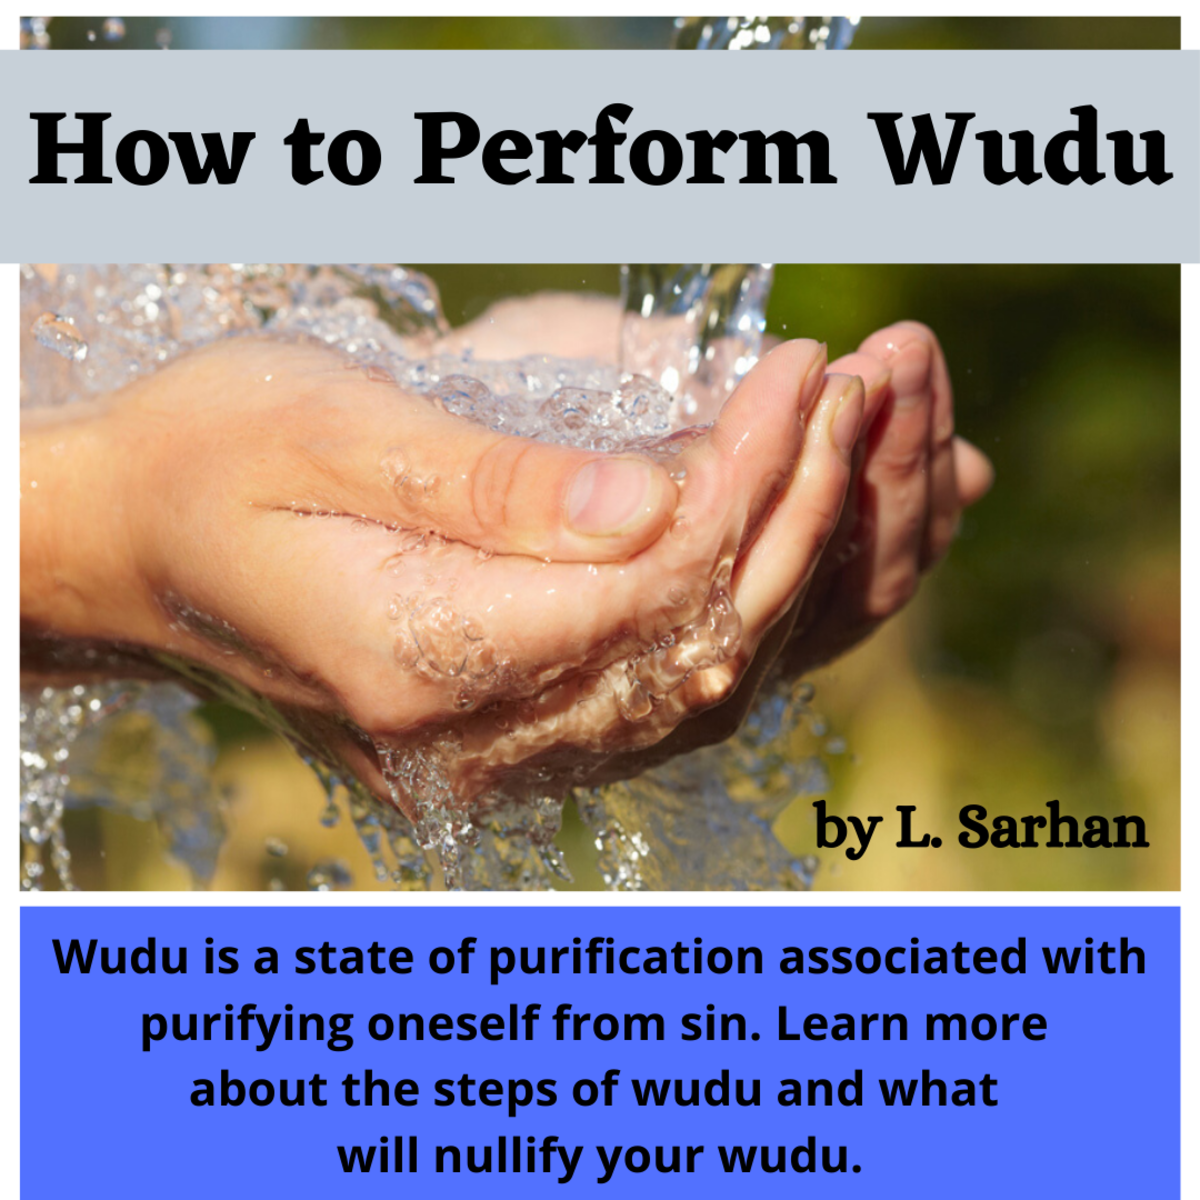 This article explains the steps to wudu based on evidence from the Qu'ran and Hadiths.